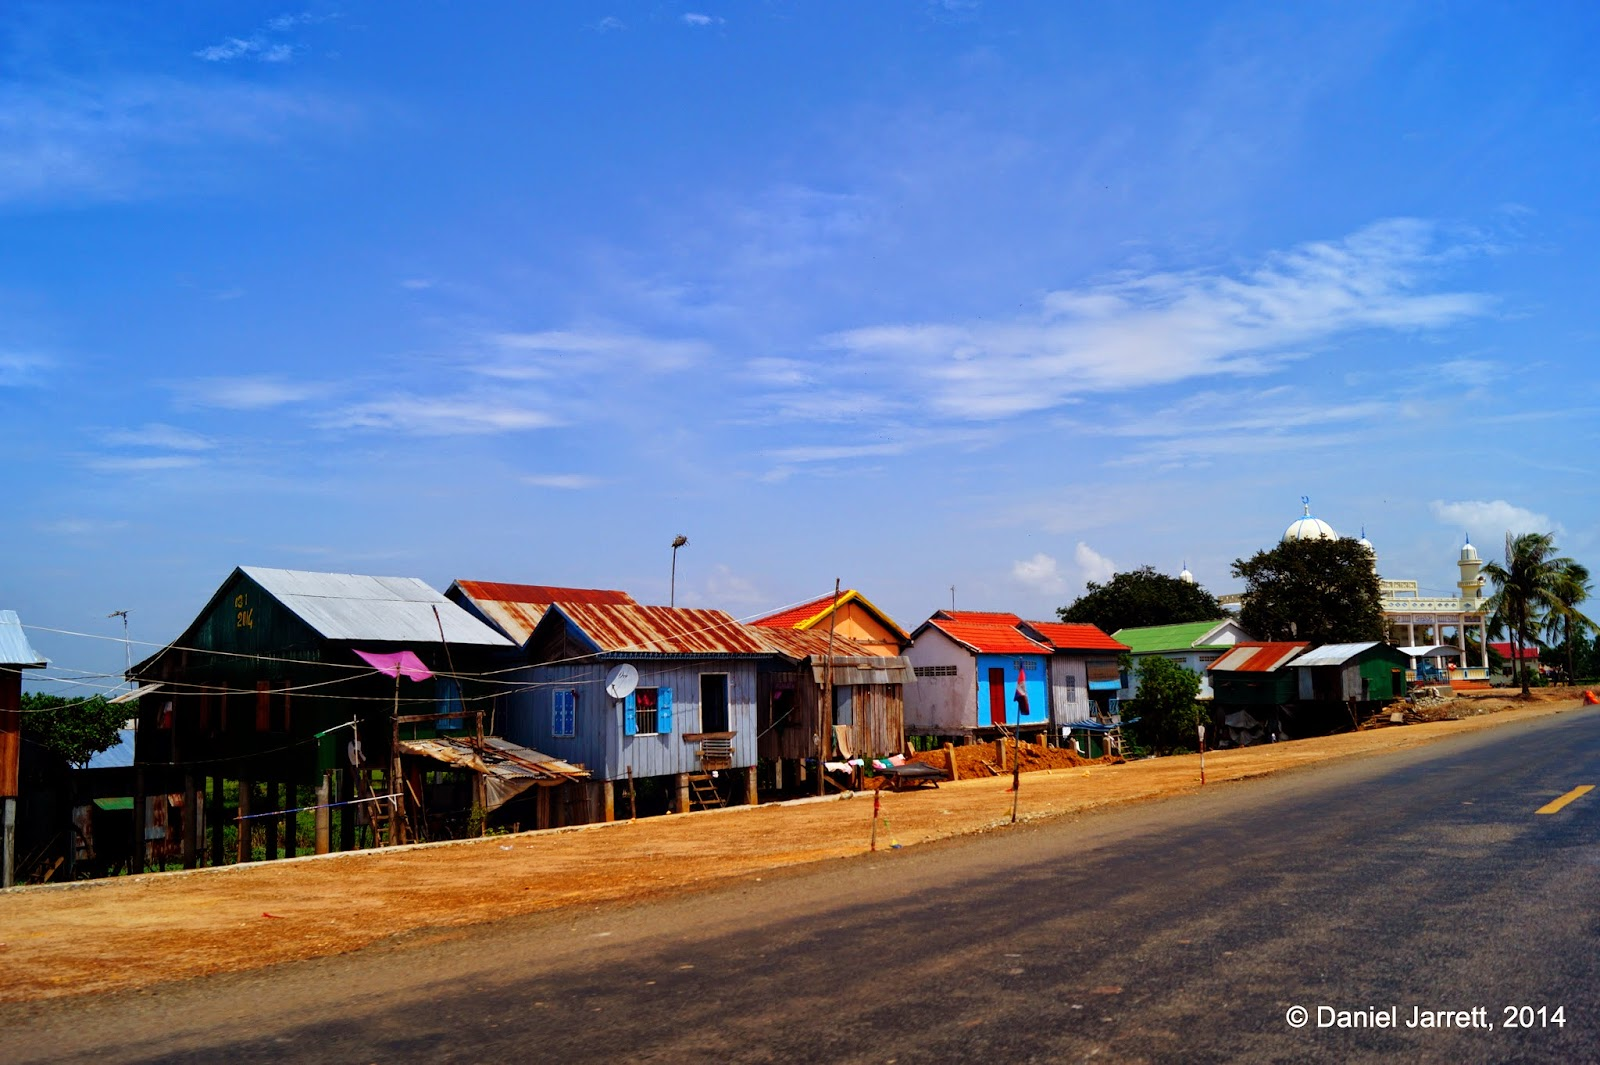 Row of houses, Cambodia